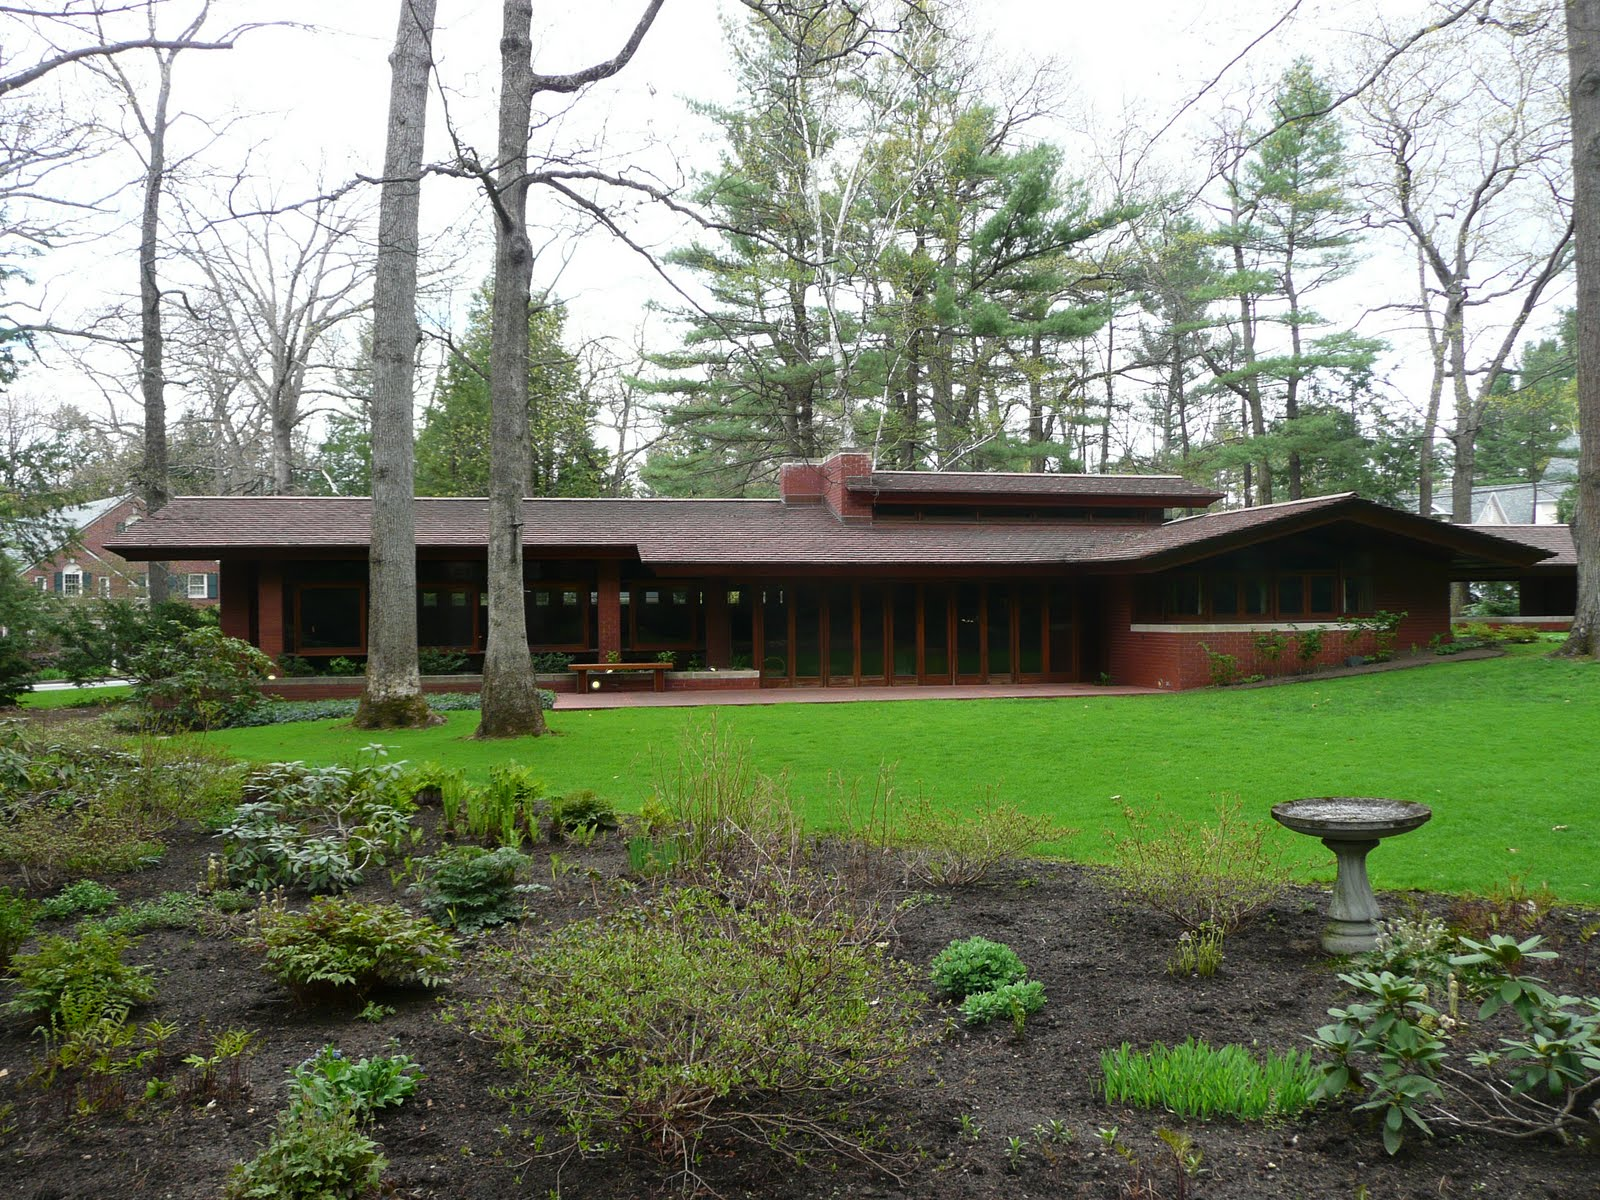 the life and influence of frank lloyd wright - the life of frank lloyd wright before frank lloyd wright was born his mother knew he was going to be a world renowned architect in his nursery, she hung prints of well known cathedrals of europe on the walls.